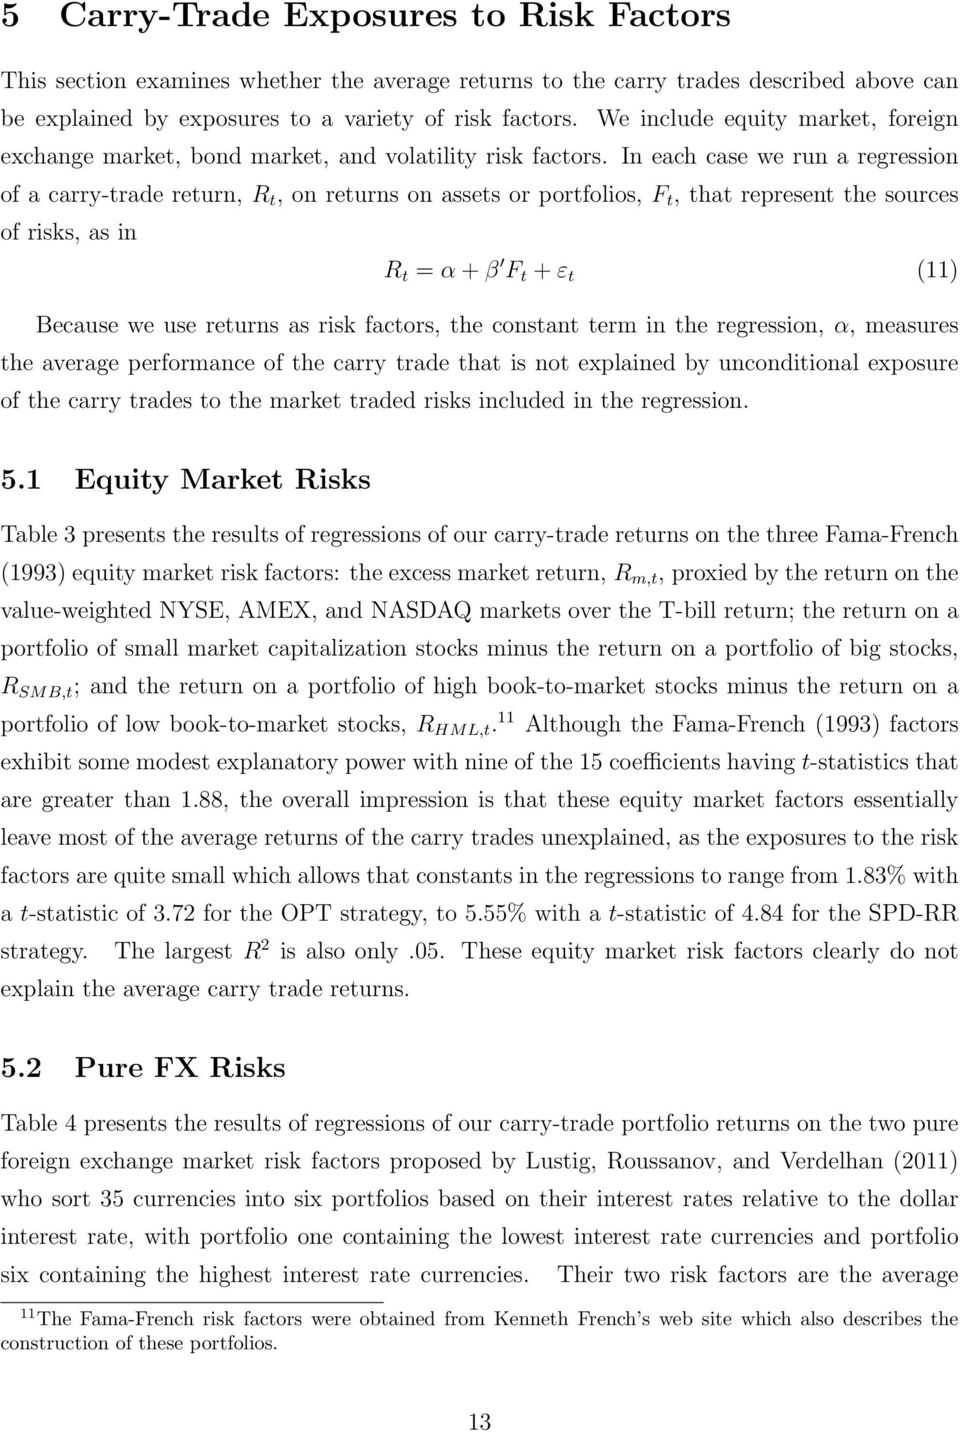 In each case we run a regression of a carry-trade return, R t, on returns on assets or portfolios, F t, that represent the sources of risks, as in R t = α + β F t + ε t (11) Because we use returns as